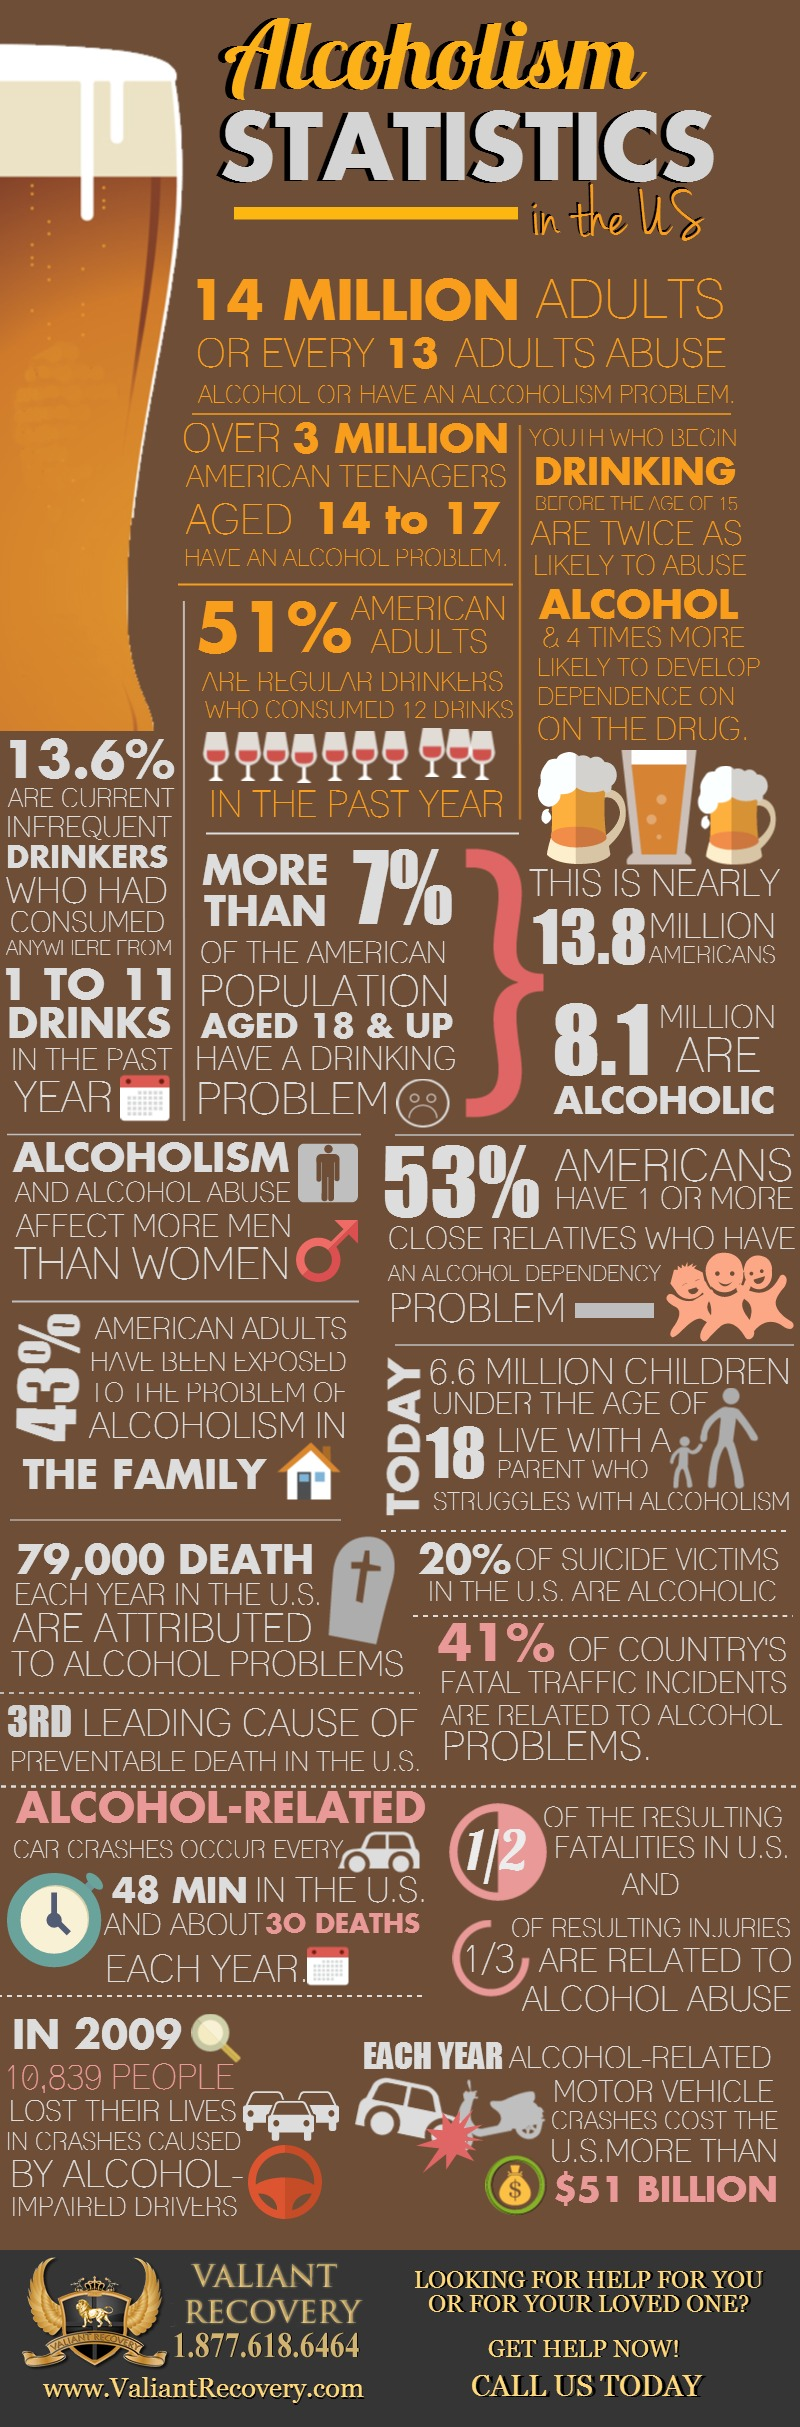 alcohol and alcoholism in the united states of america History of alcohol use america massachusetts laws attempt to control widespread drunkenness, particularly from home-brews, and to supervise taverns the illicit alcohol trade booms in the united states mar 22, 1933.